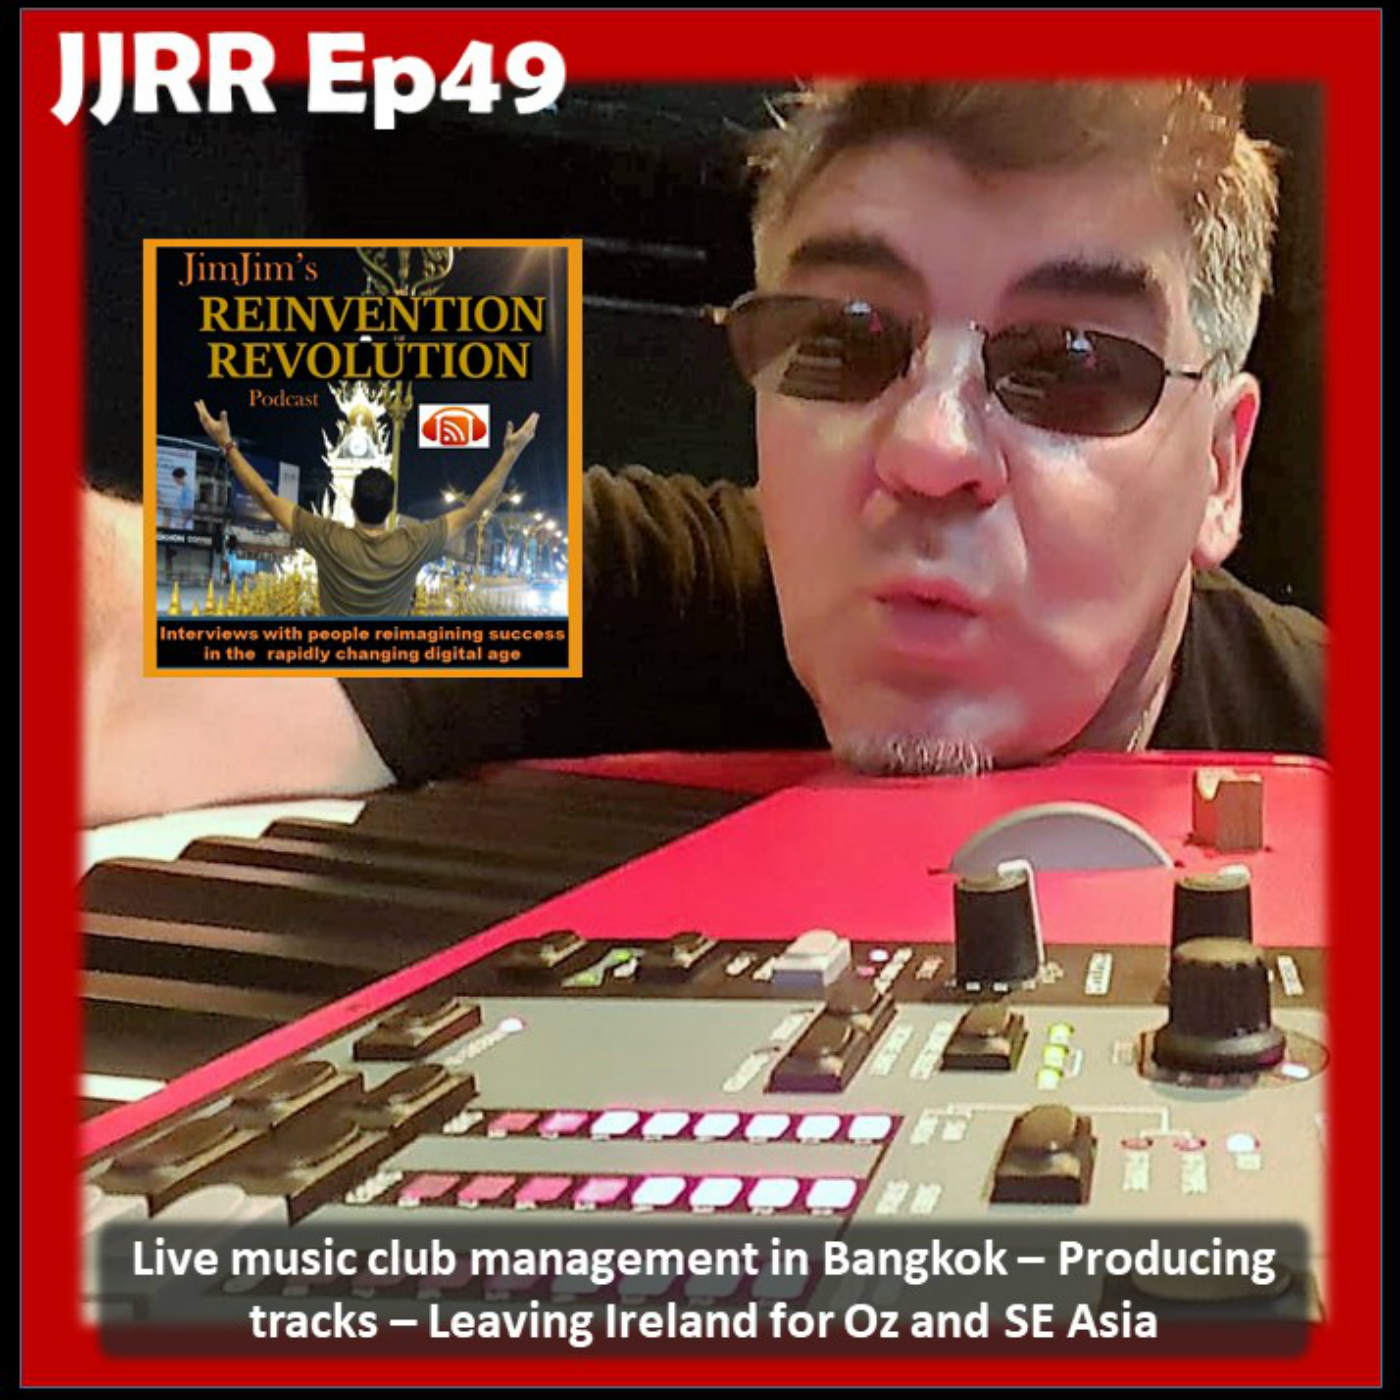 JJRR Ep49 Live music club management in Bangkok – Producing tracks – Leaving Ireland for Oz and SE Asia – with Keith Nolan